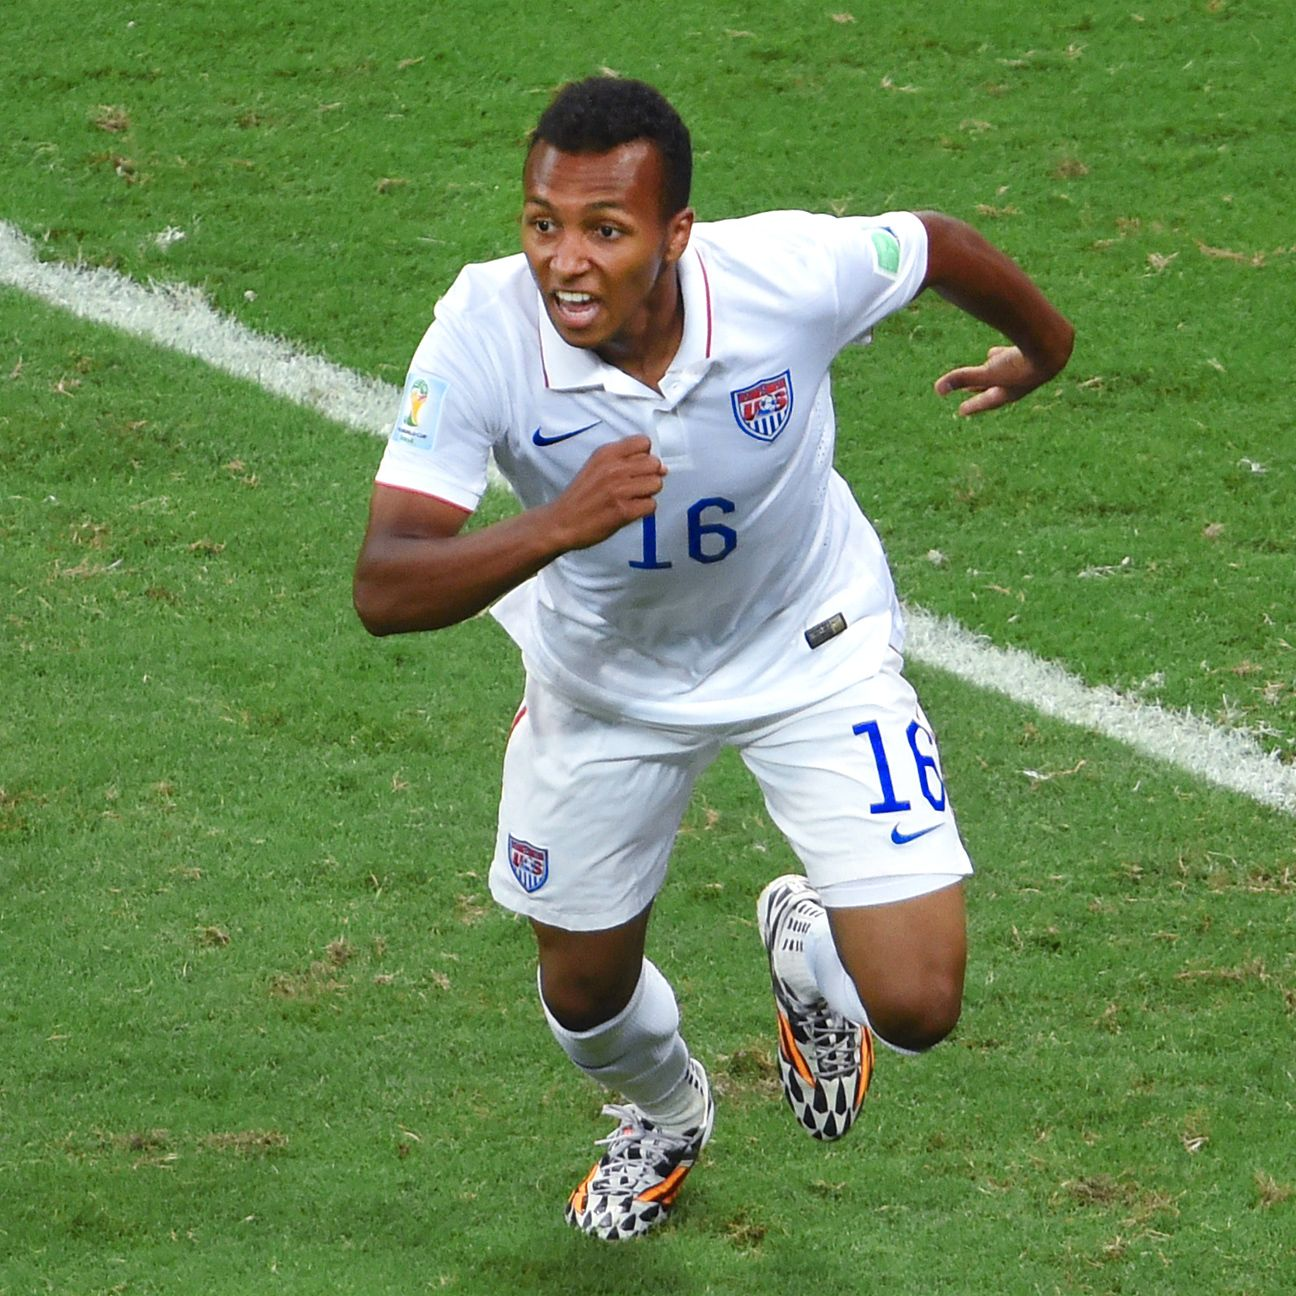 The purchasing power of the U.S. audience would be one of the allures for Real Madrid to sign Julian Green.